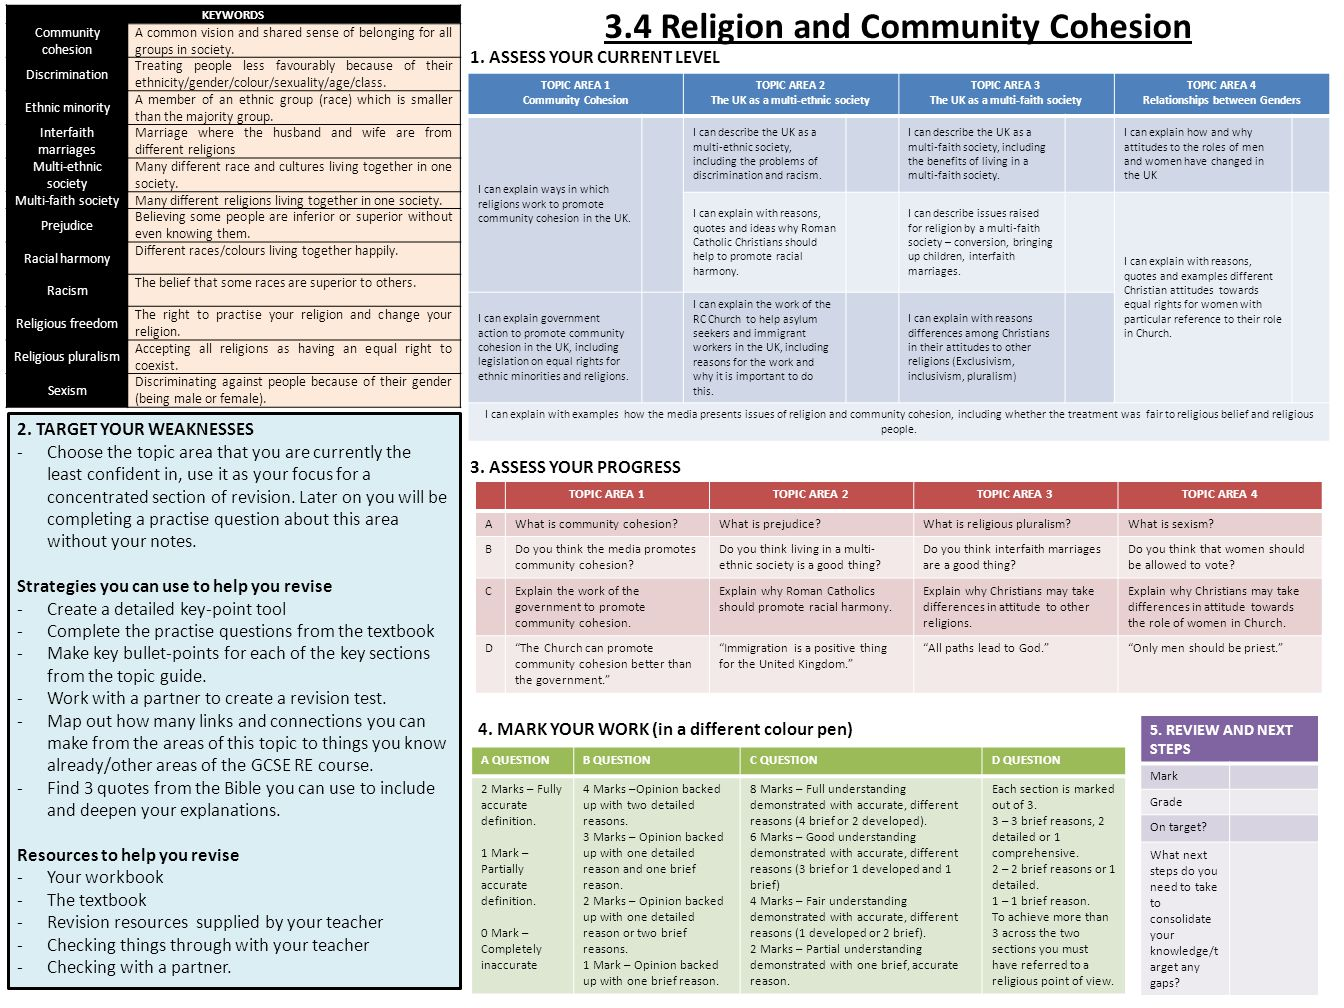 3.4 Religion and Community Cohesion KEYWORDS Community cohesion A common vision and shared sense of belonging for all groups in society. Discriminatio